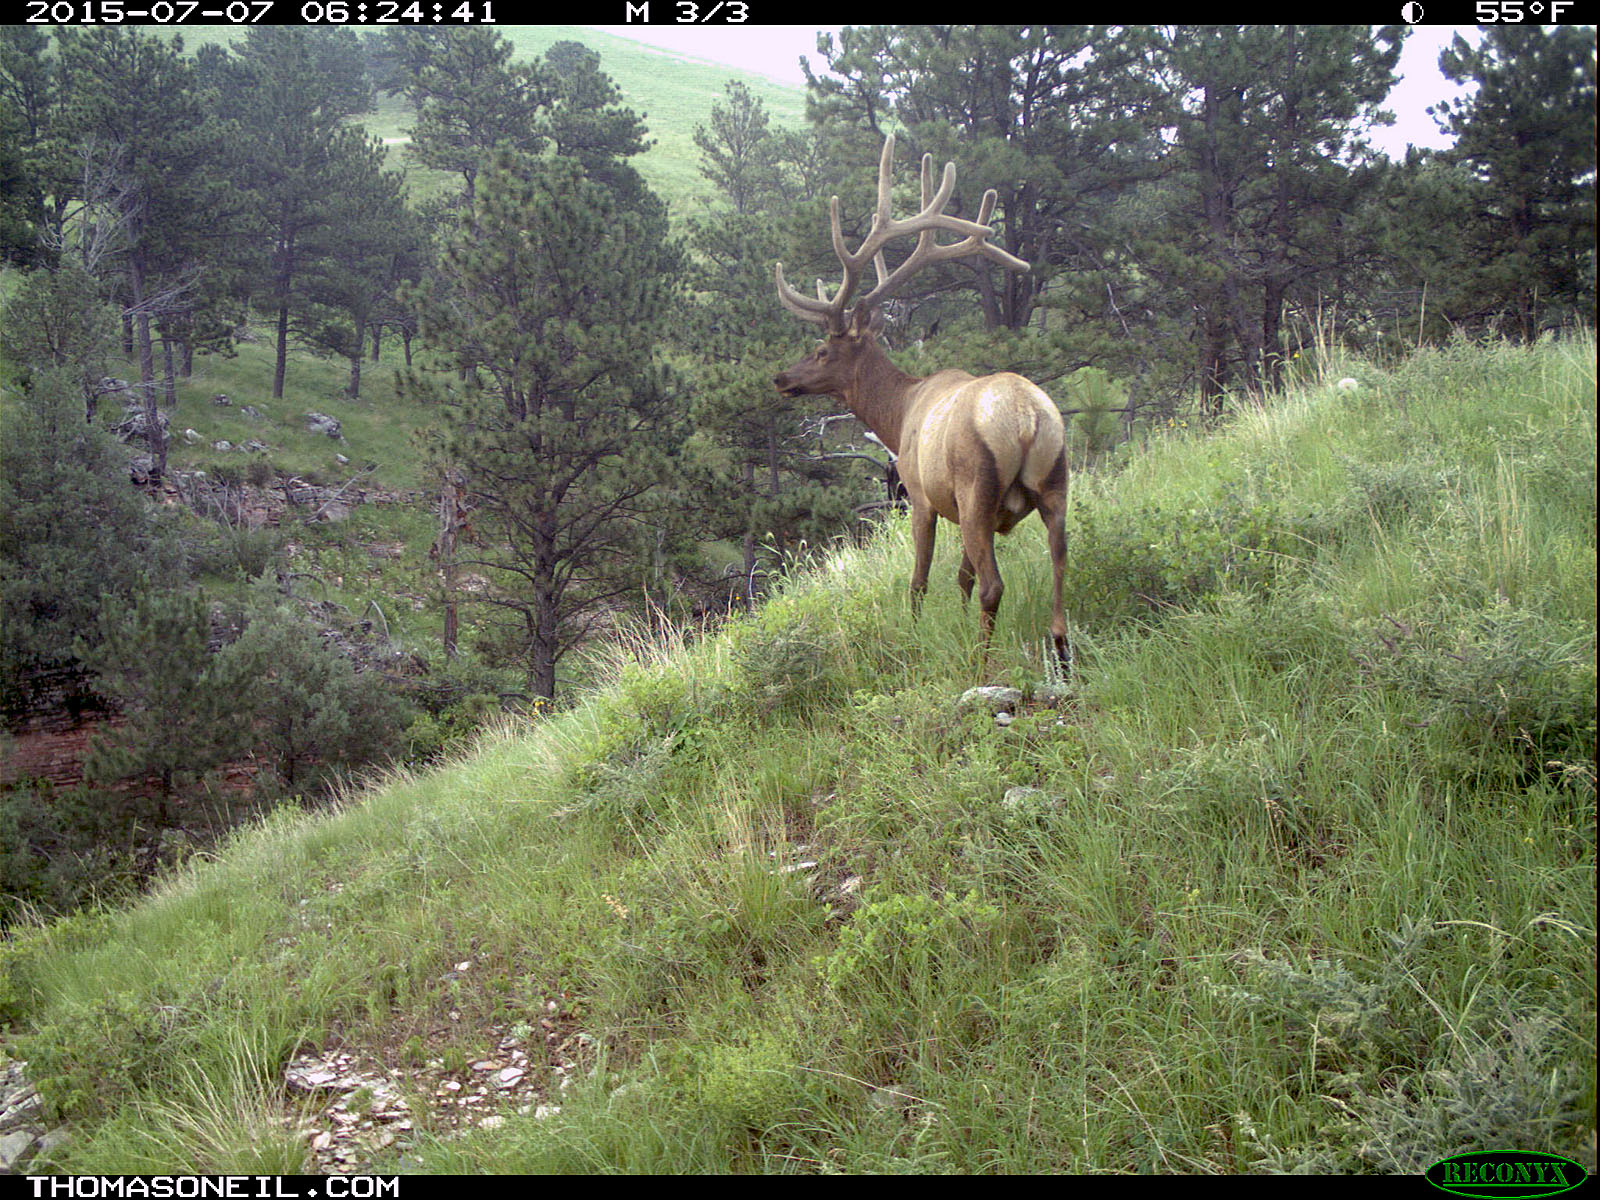 Elk scratching sequence on trailcam, 1 of 7, Wind Cave National Park, July 2015,   Click for next photo.